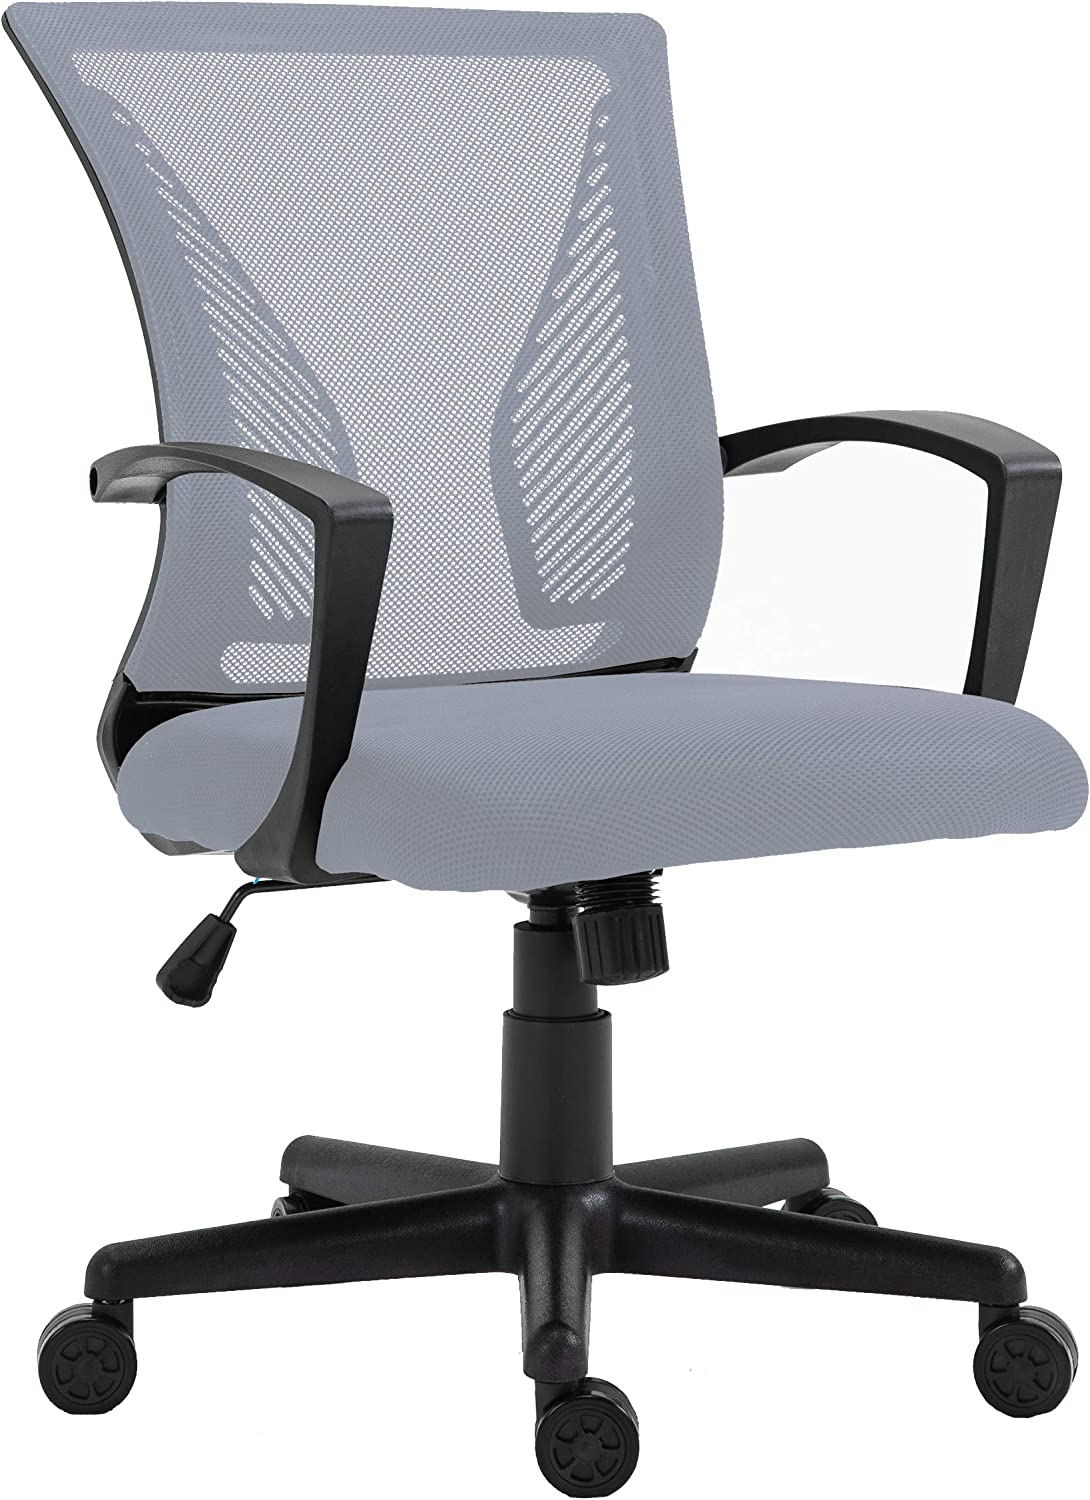 HALTER Desk Chair - Grey Gaming Mesh Chair - Adjustable and Comfortable Ergonomic Chair with Armrests and Wing Lumbar Support - Ideal Gaming or Home Office Chair